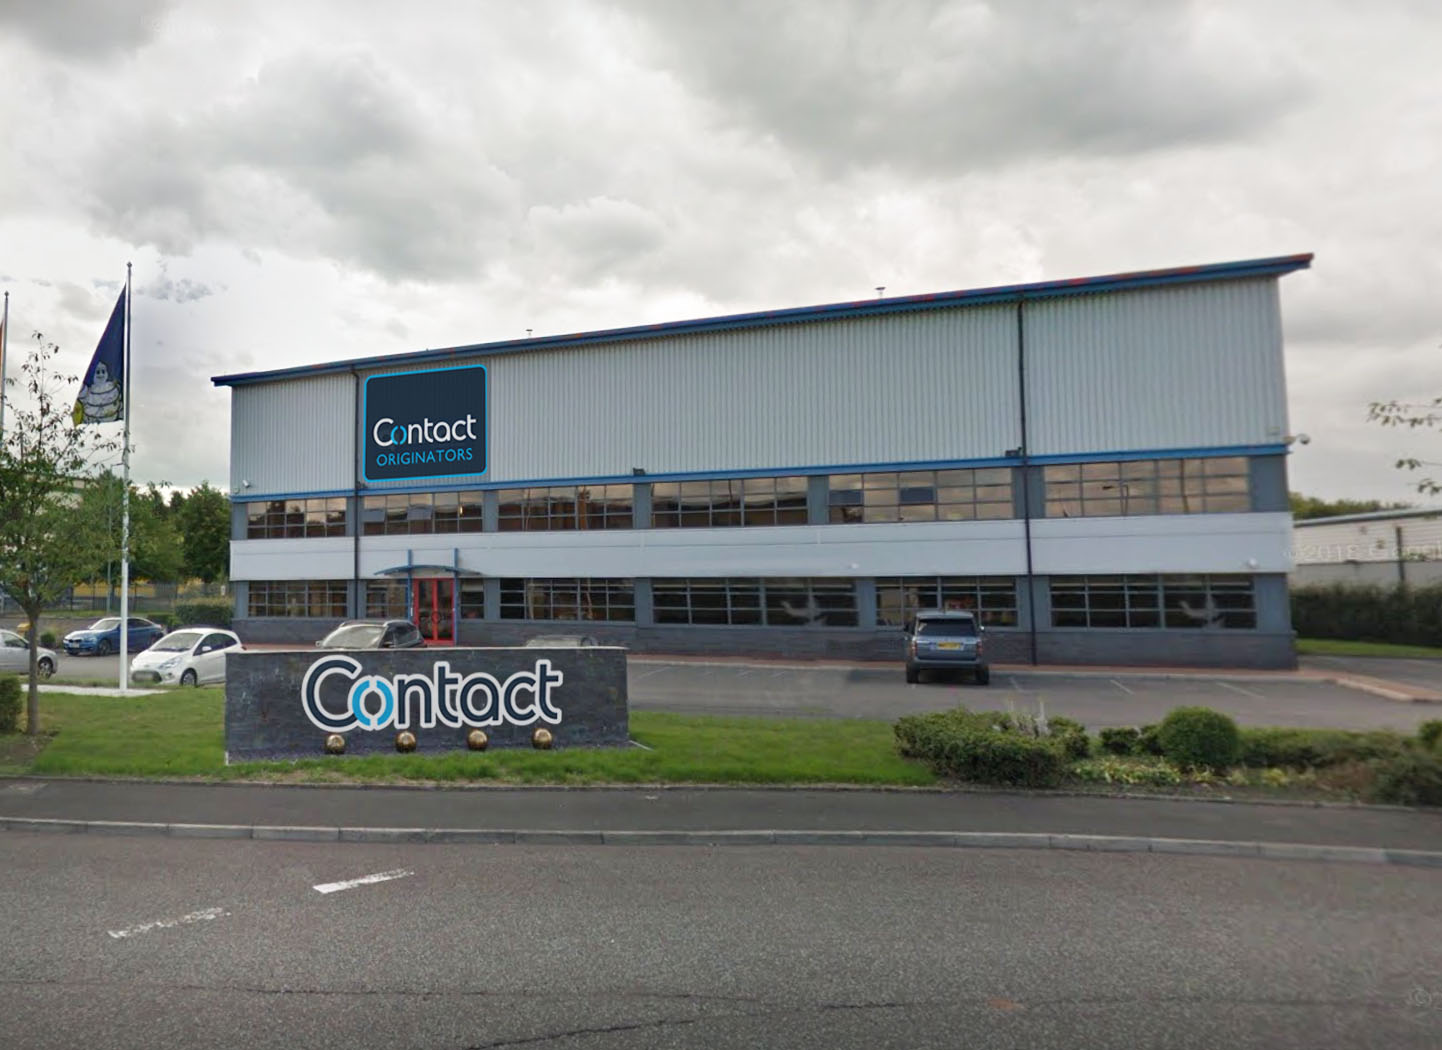 Contact Originators reveals £5M investment in super site